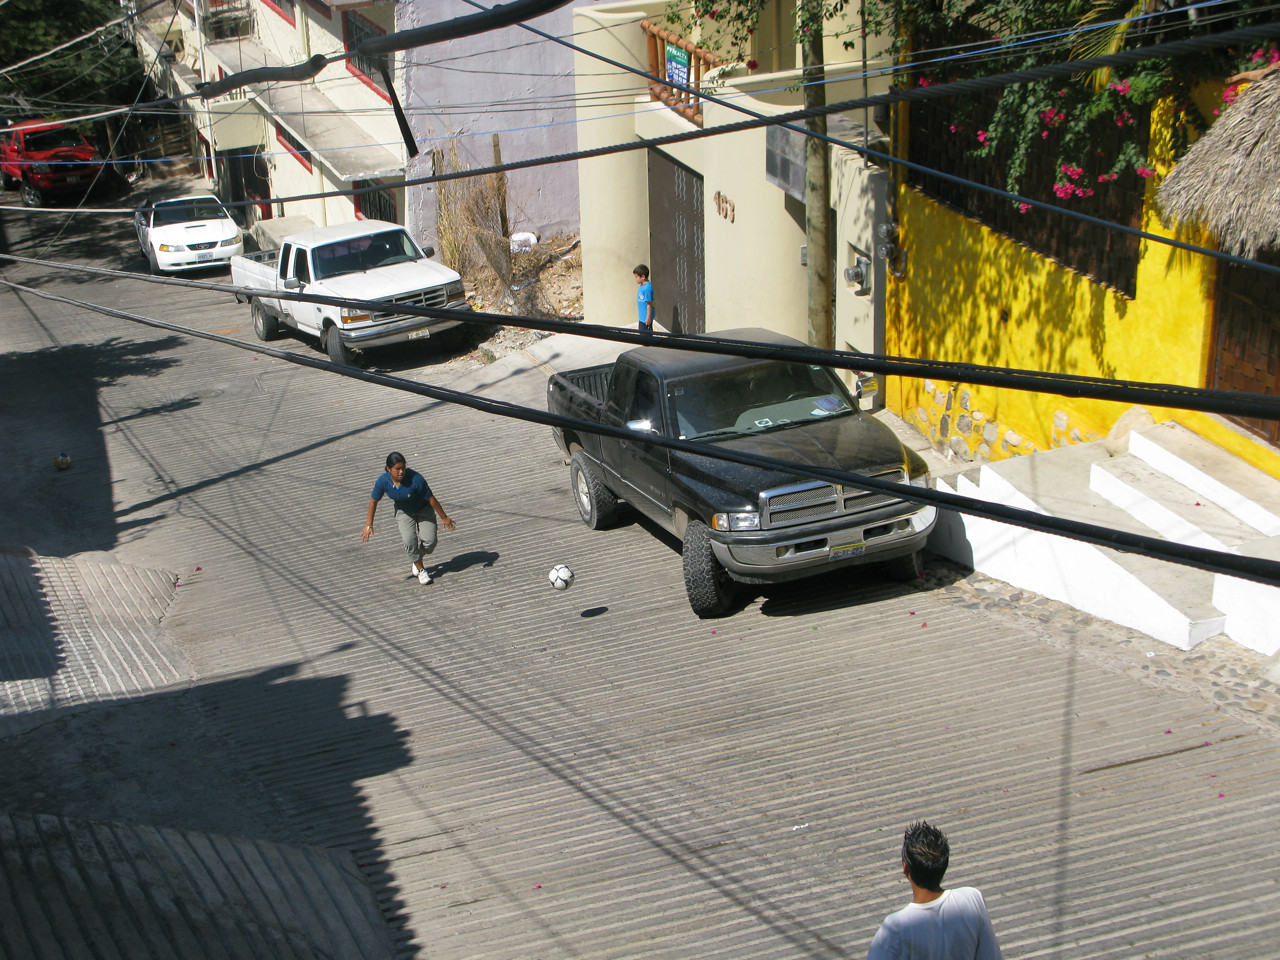 Believe it or not, the neighborhood kids had a rambunctious game of soccer on the steep street outside my apartment last Sunday morning.  The next photos show more of the game, which I tried to video and couldn't keep focused on the ball!